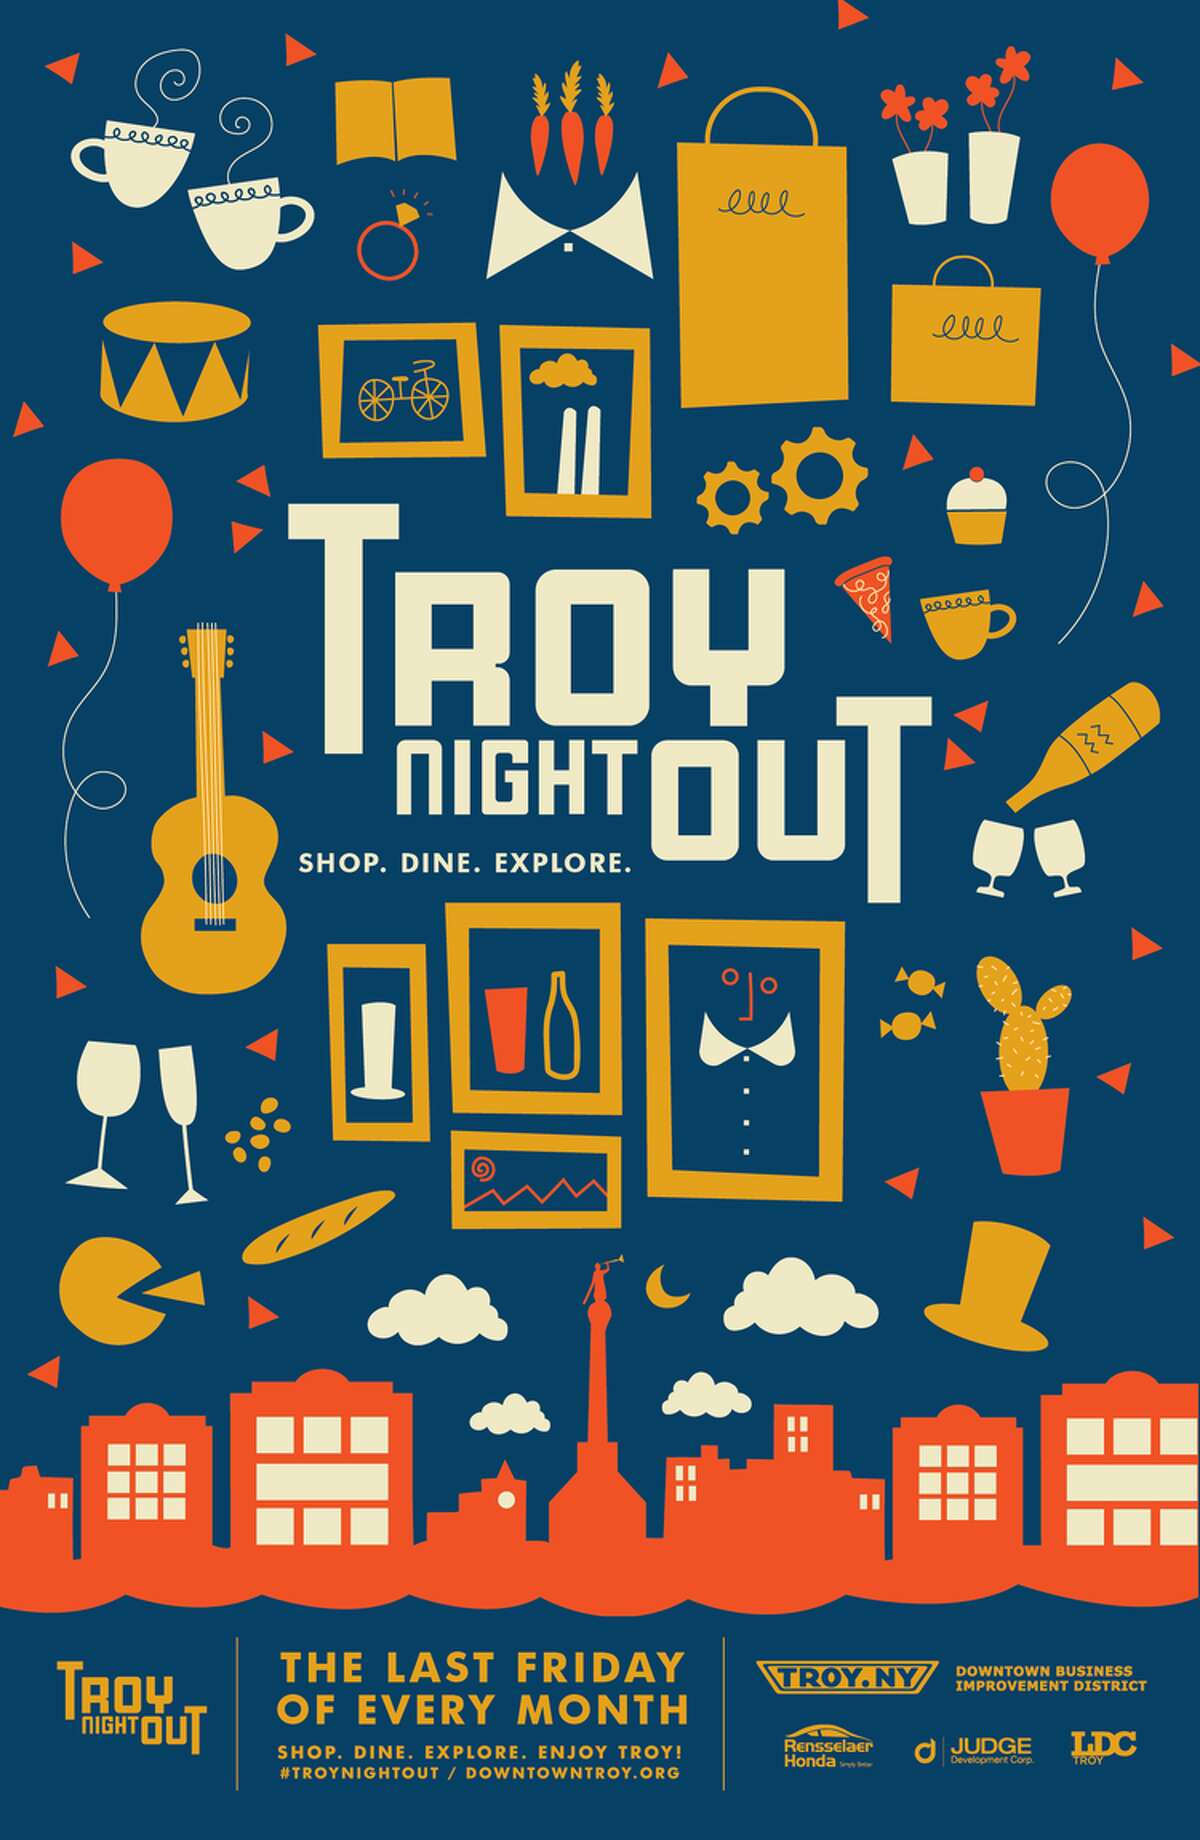 Troy Night Out is a monthly arts and cultural event that regularly draws thousands people onto the streets of Downtown Troy. Attendees are able to enjoy countless art events, music venues, fine restaurants as well as unique boutiques of all varieties. This month's theme: Family & Pets Night. Visit the website to see the full list of specials. When: Friday, June 24, 5 - 9 PM. Where: Downtown Troy.